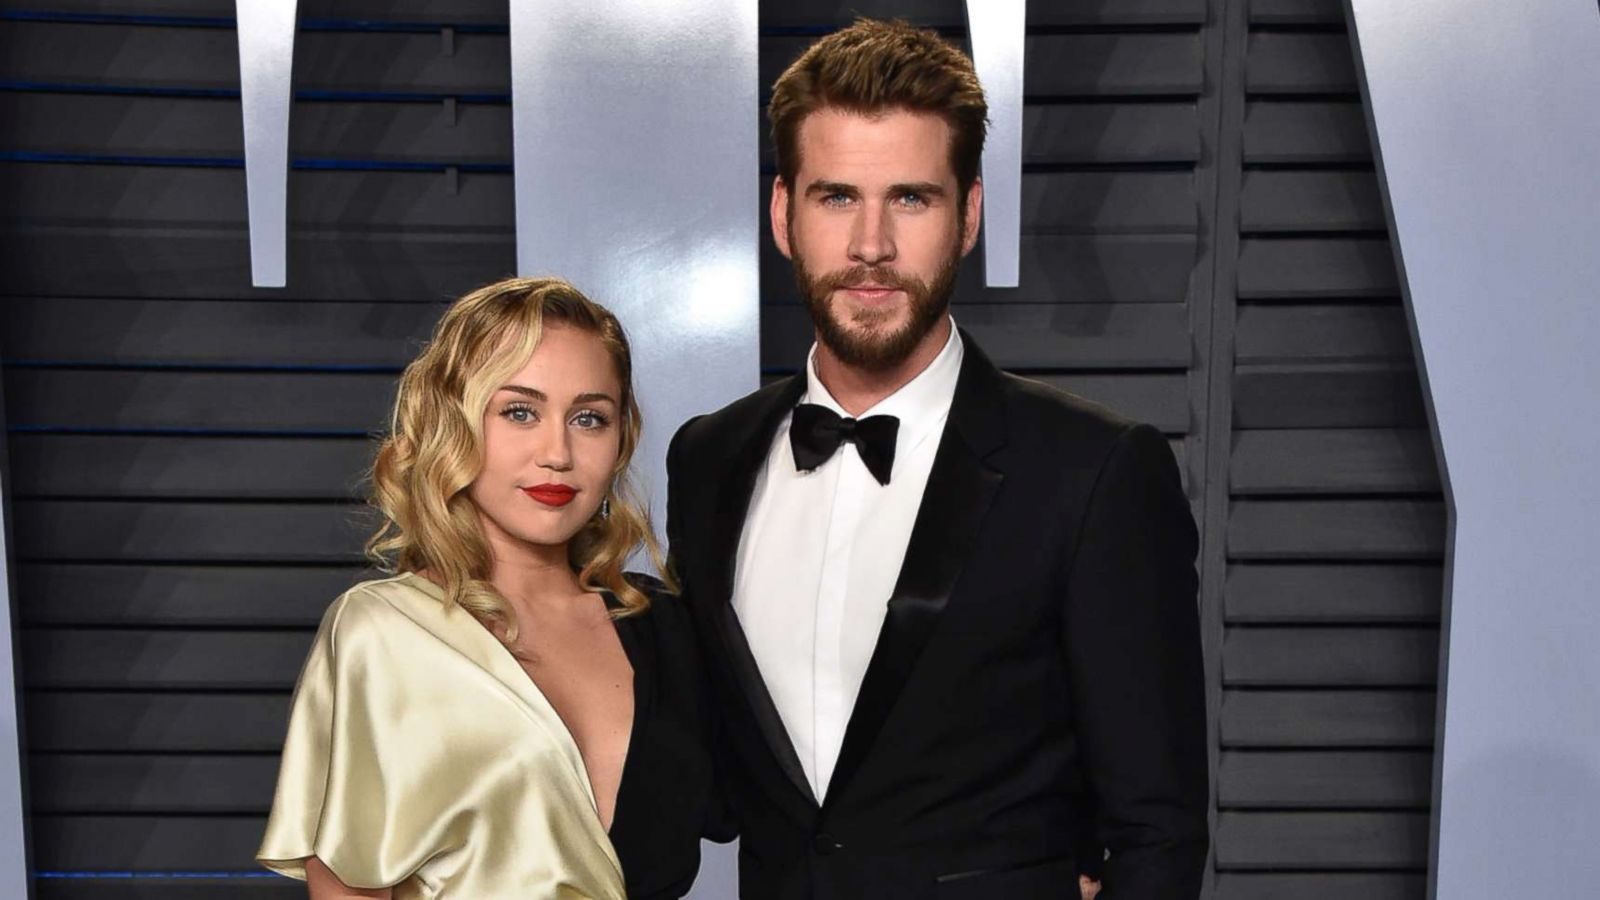 Miley Cyrus Wedding.Miley Cyrus Seemingly Posts First Wedding Pics Video With Liam